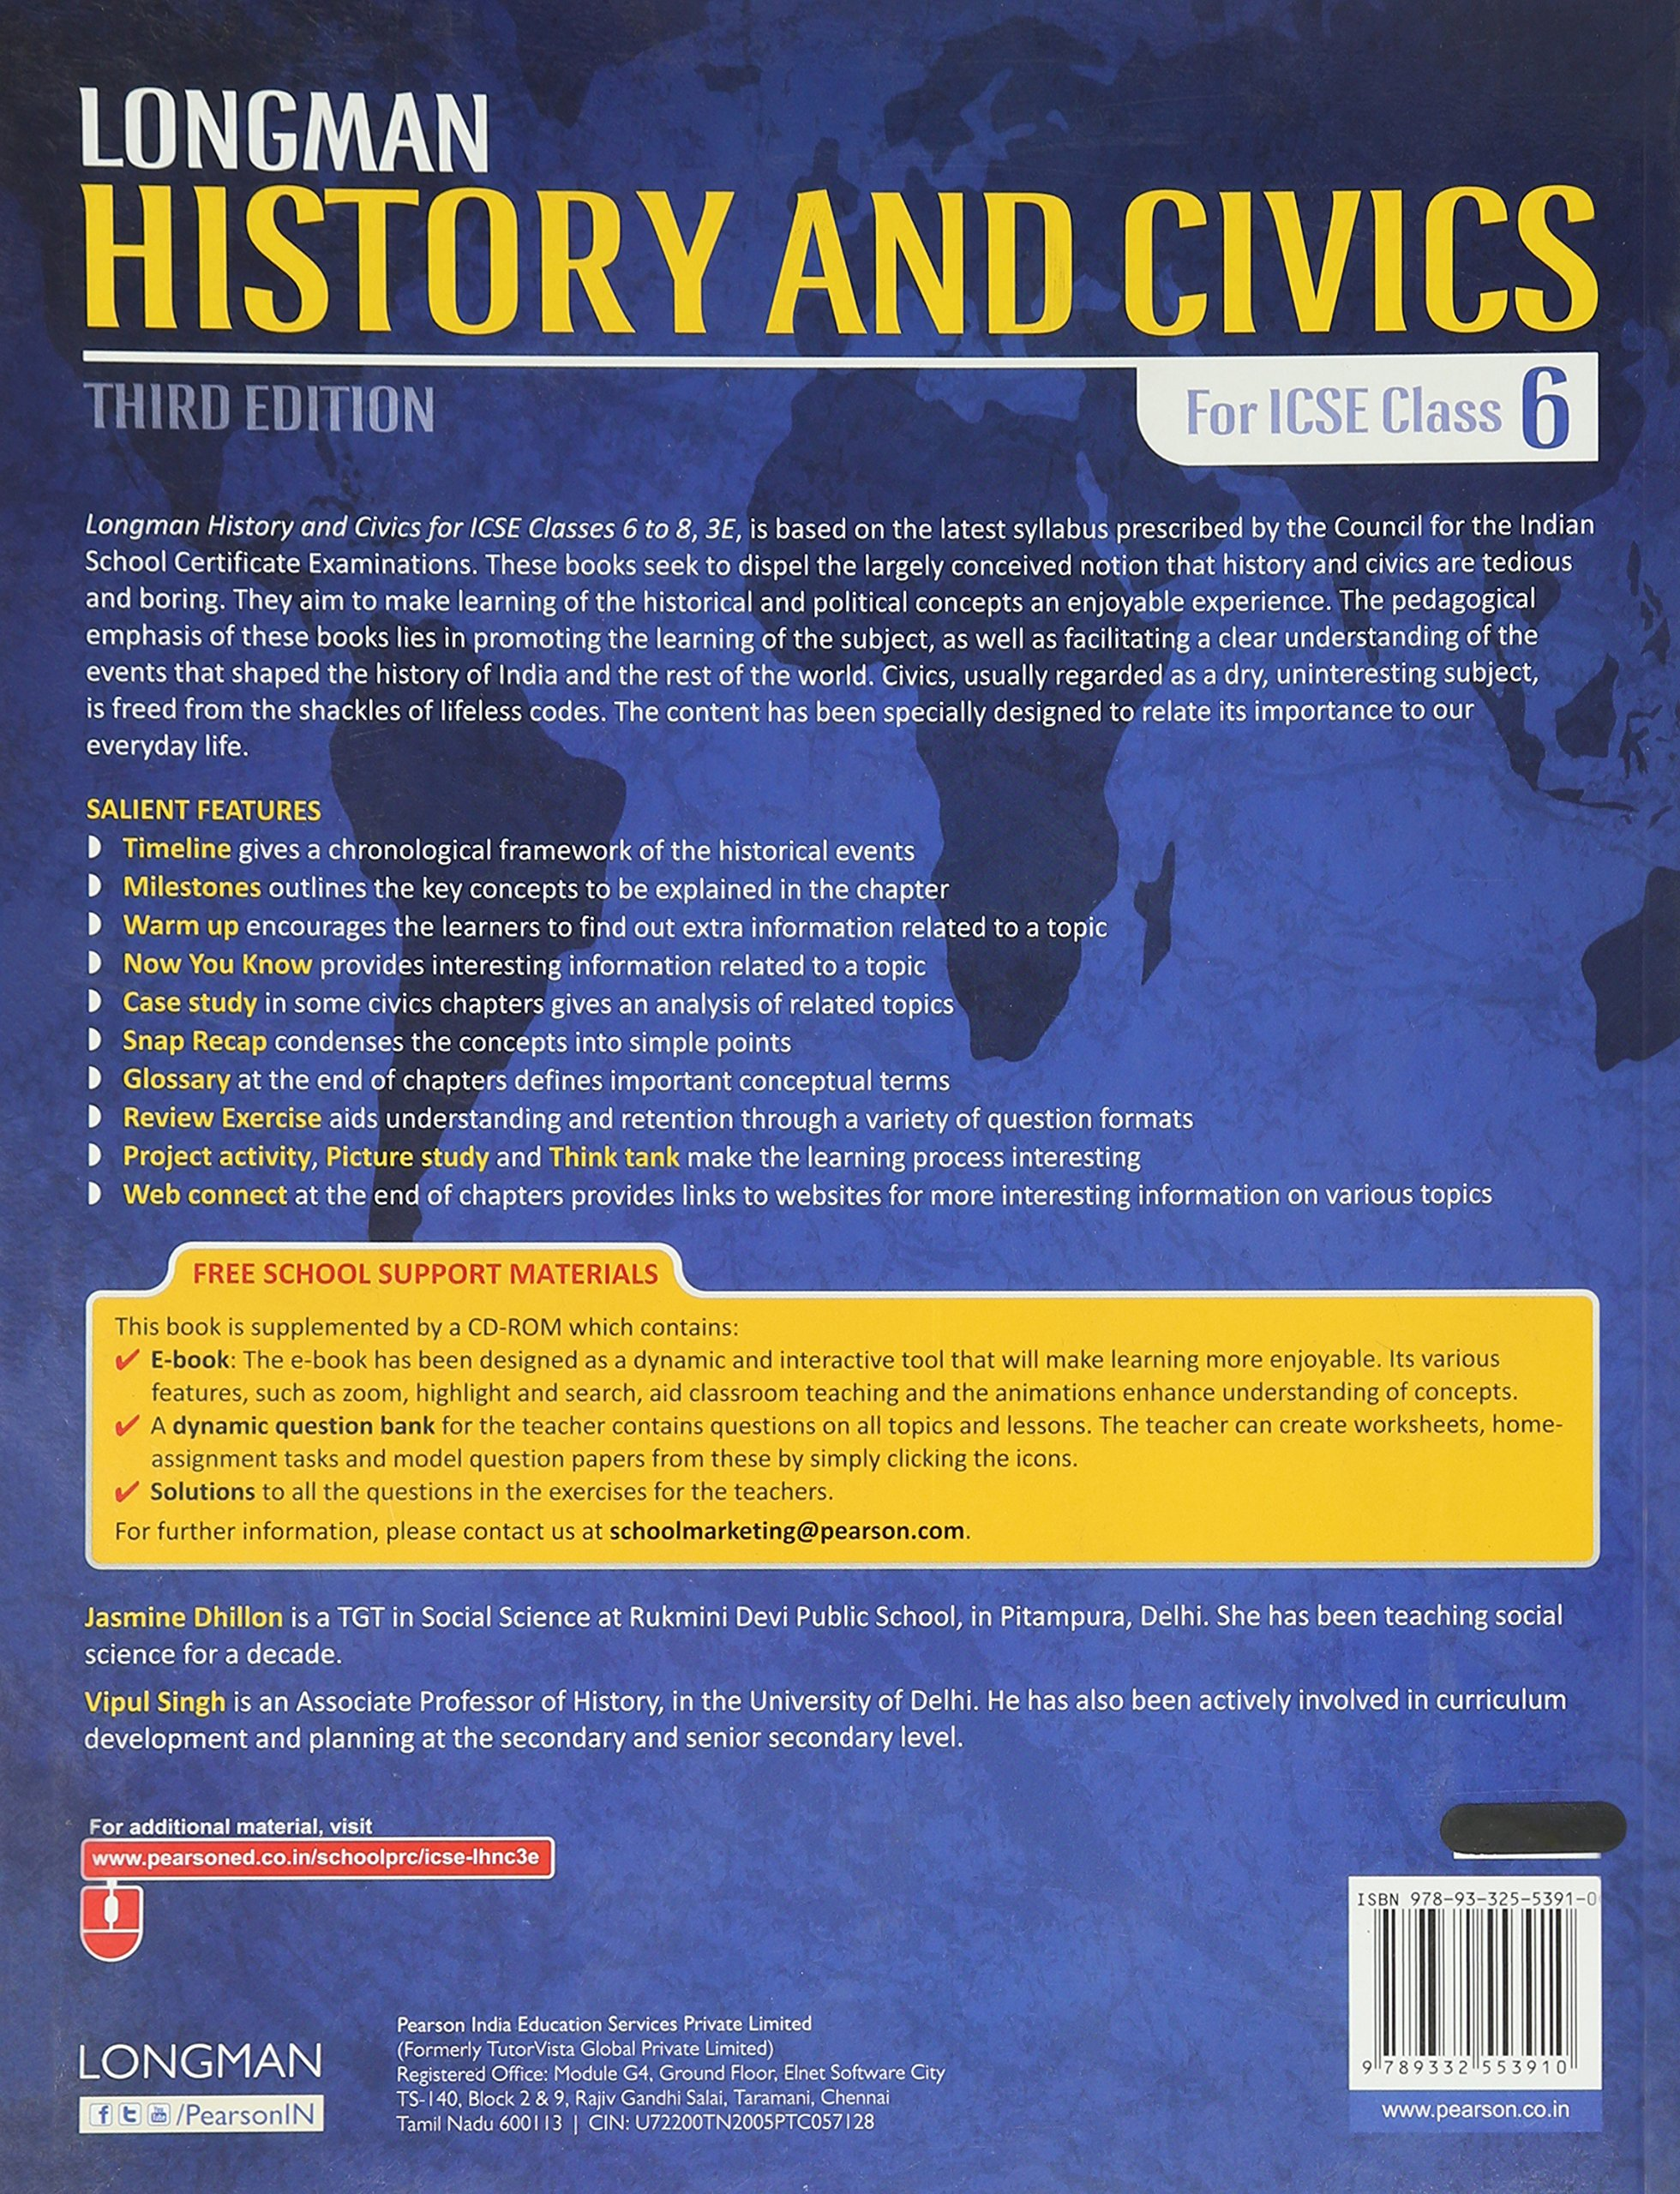 Buy Longman History Civics 3e For Icse Class 6 Book How To Read Electrical Drawings Tutorvista Answers Online At Low Prices In India Reviews